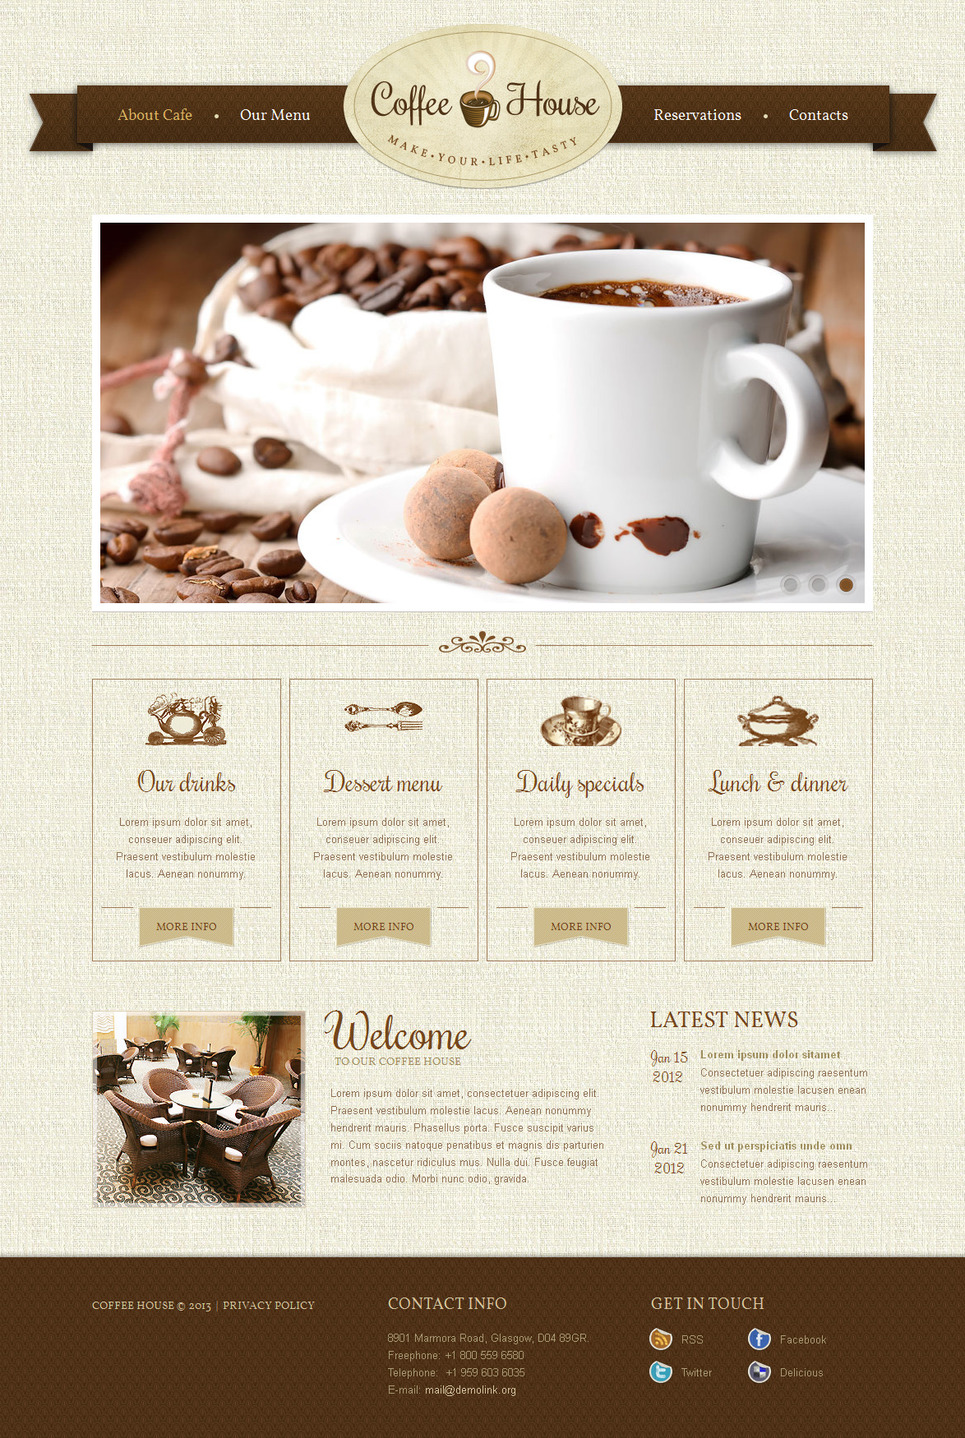 Coffee House Website Template to Make Life Tasty - image